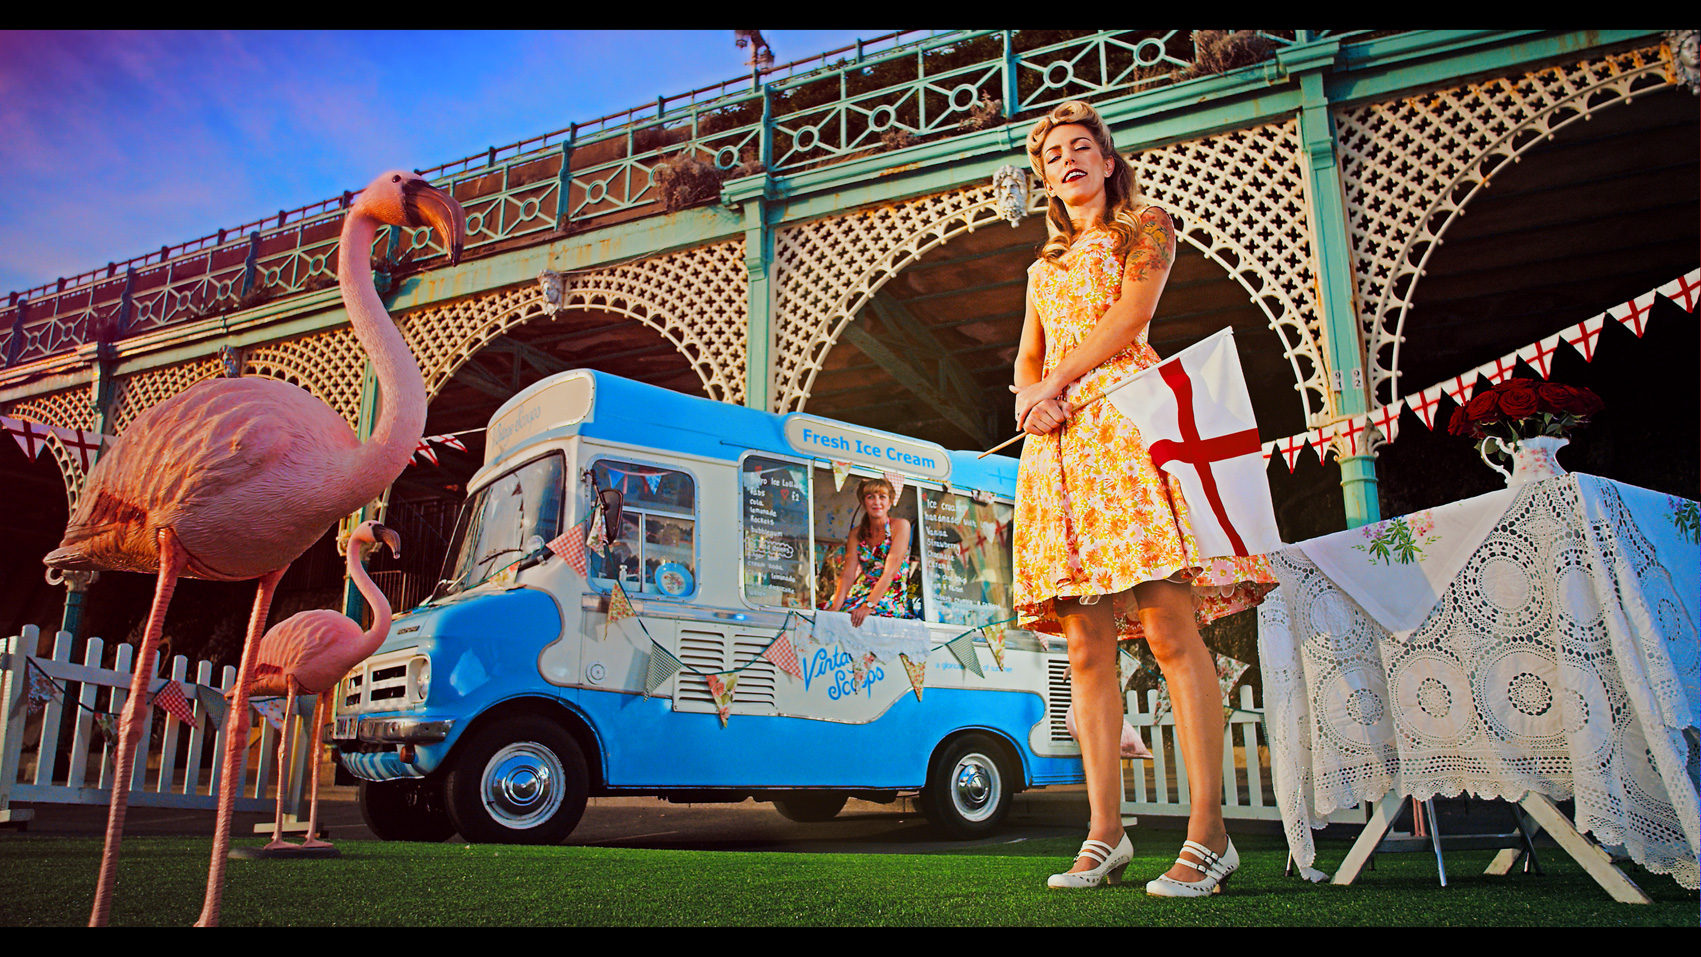 Rugby World Cup TV ad still of an ice cream seller standing outside her van in Brighton